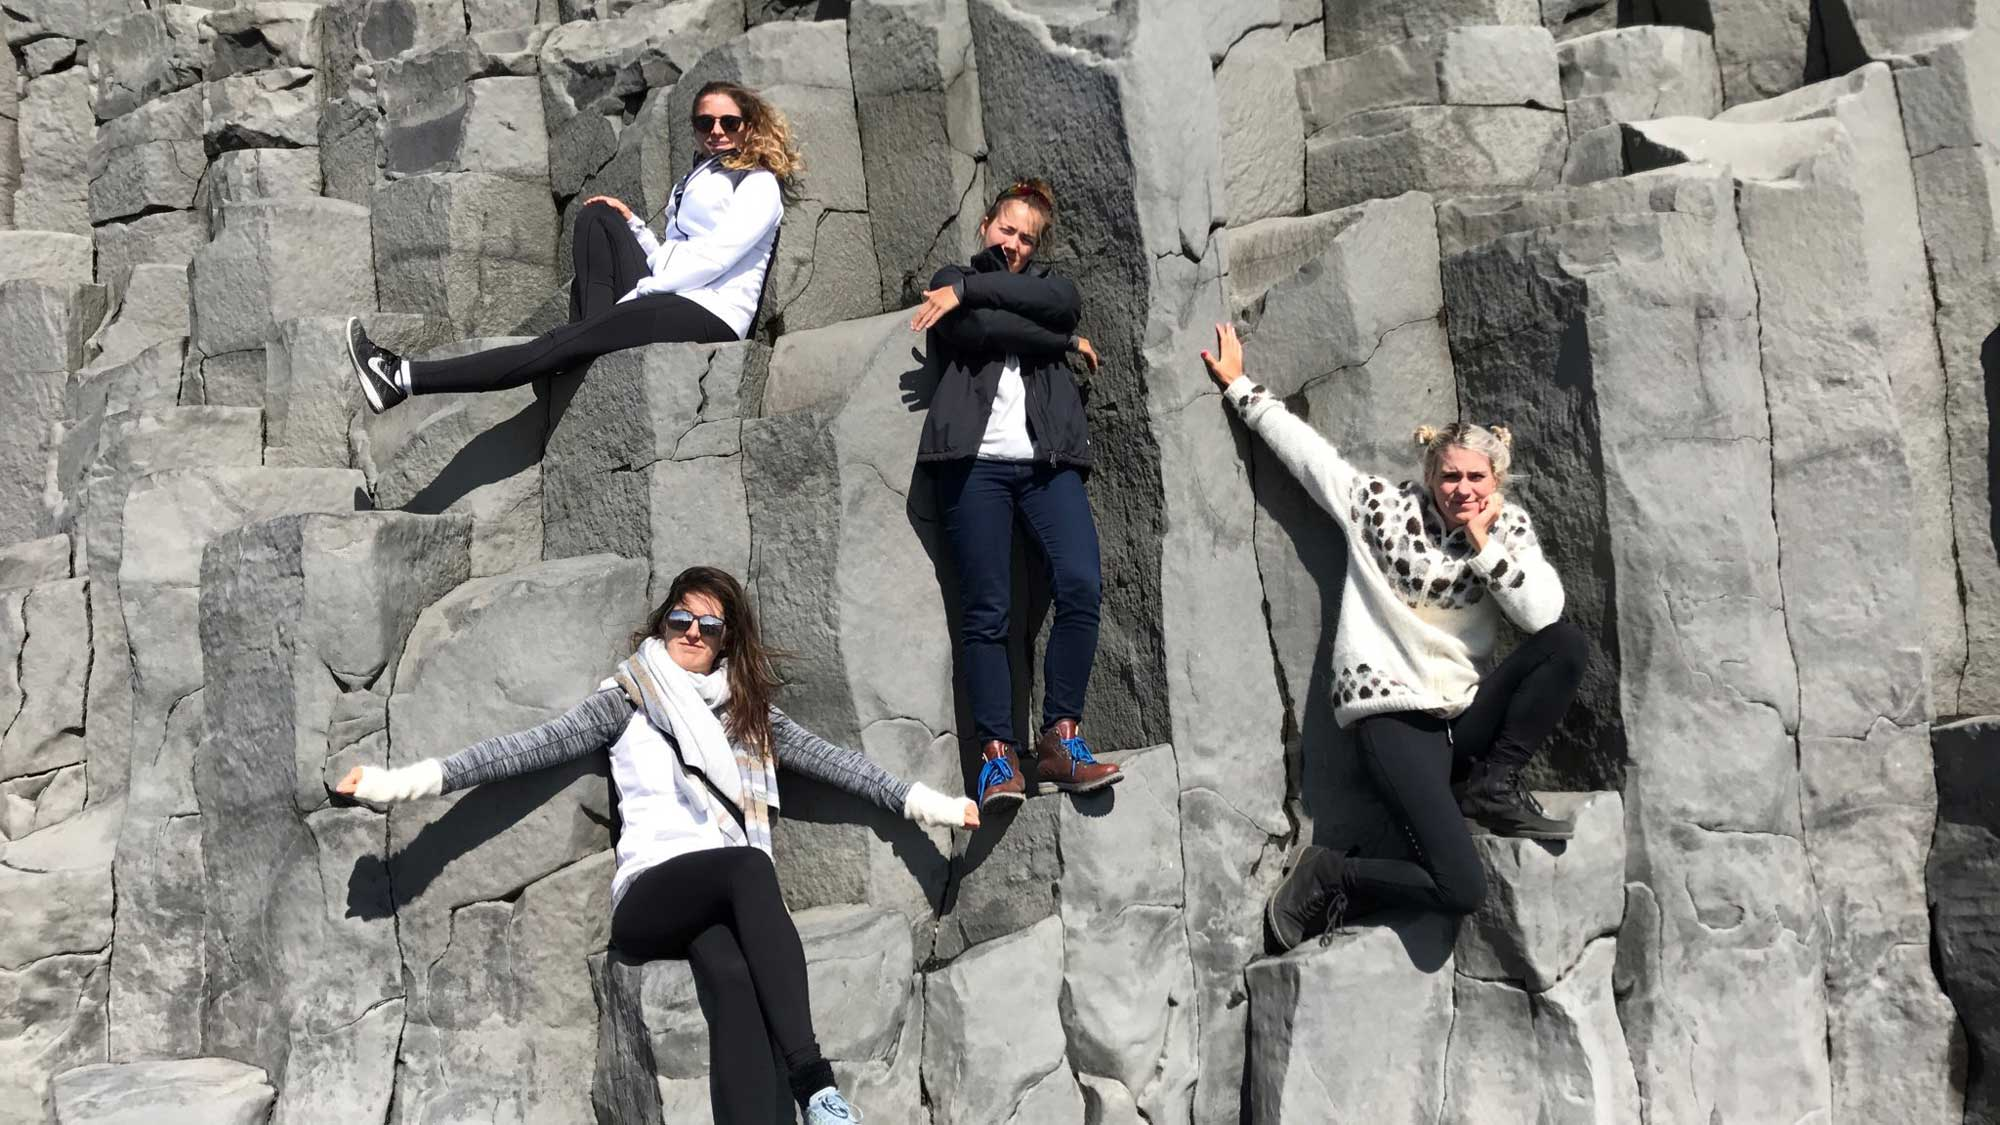 Kristinsdottir, Gal, Hurst and Lopez Pose in Iceland